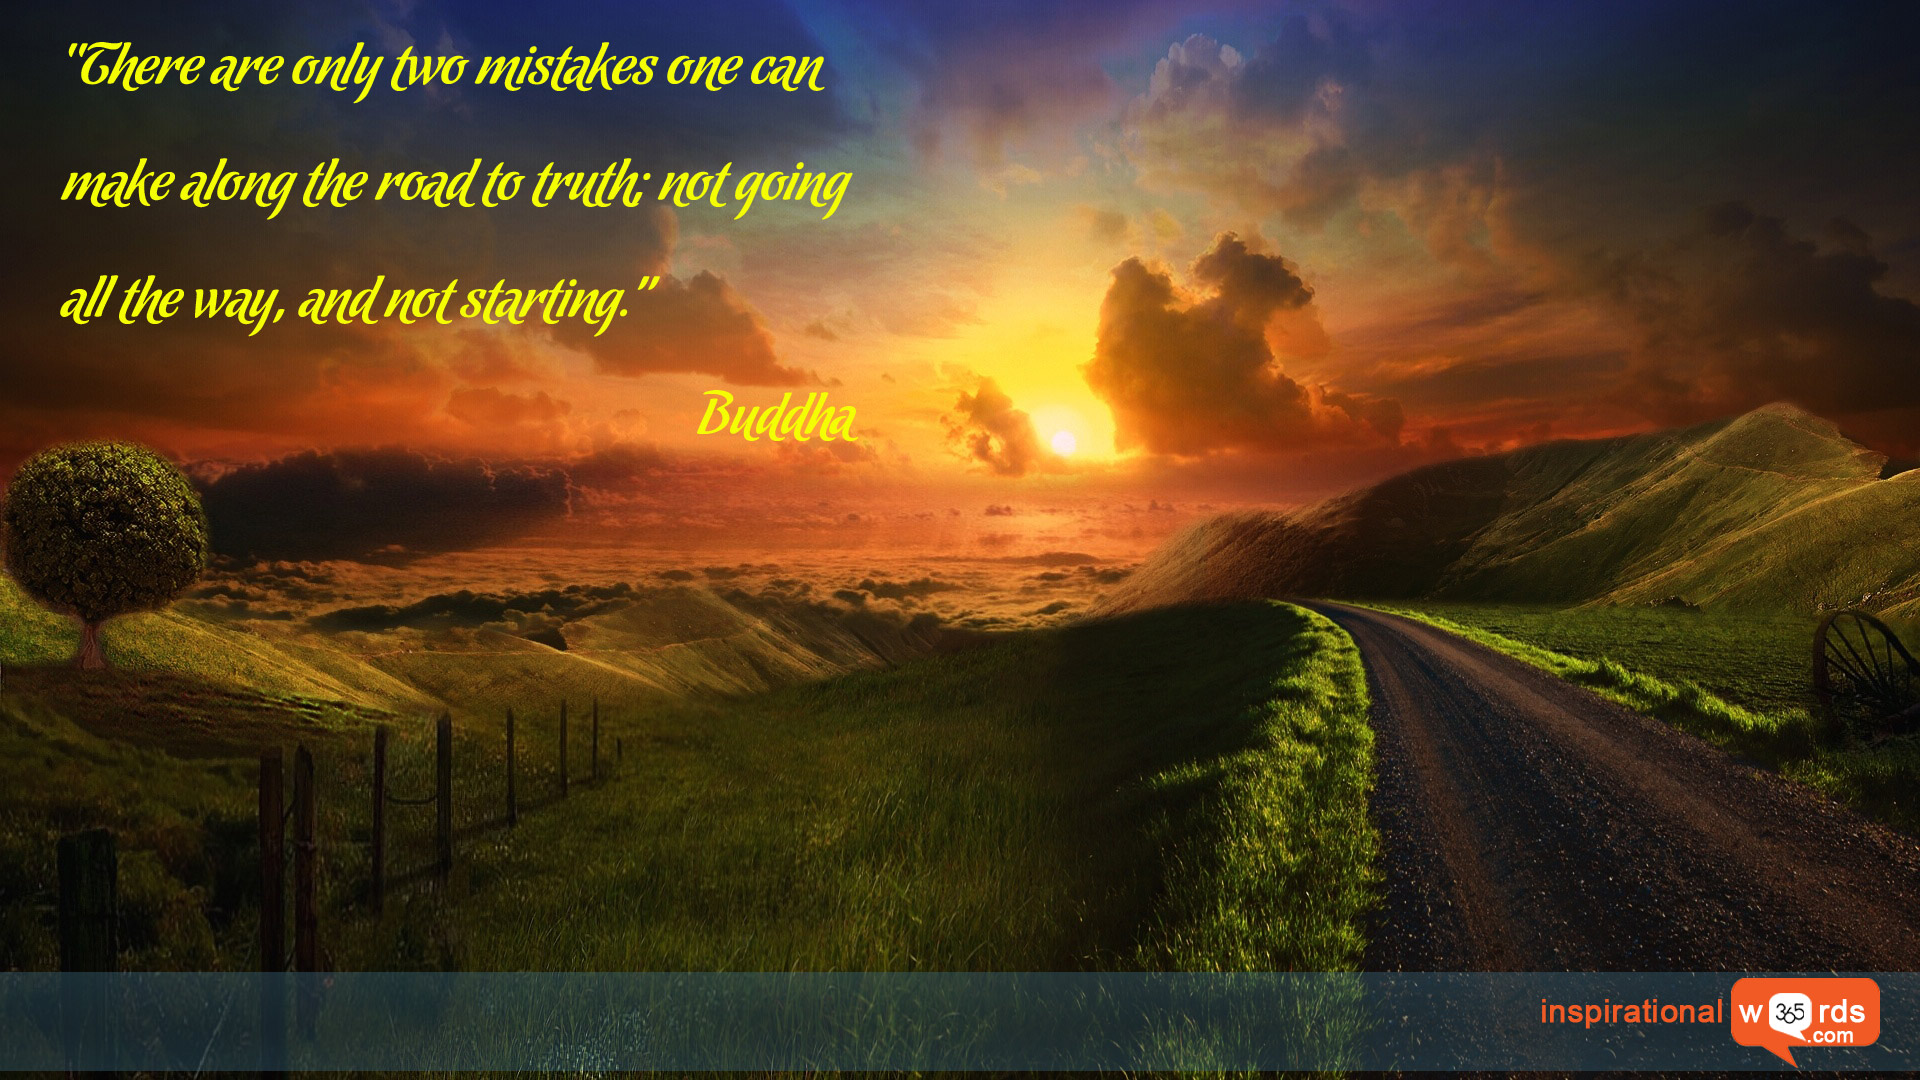 Inspirational Wallpaper Quote by Buddha